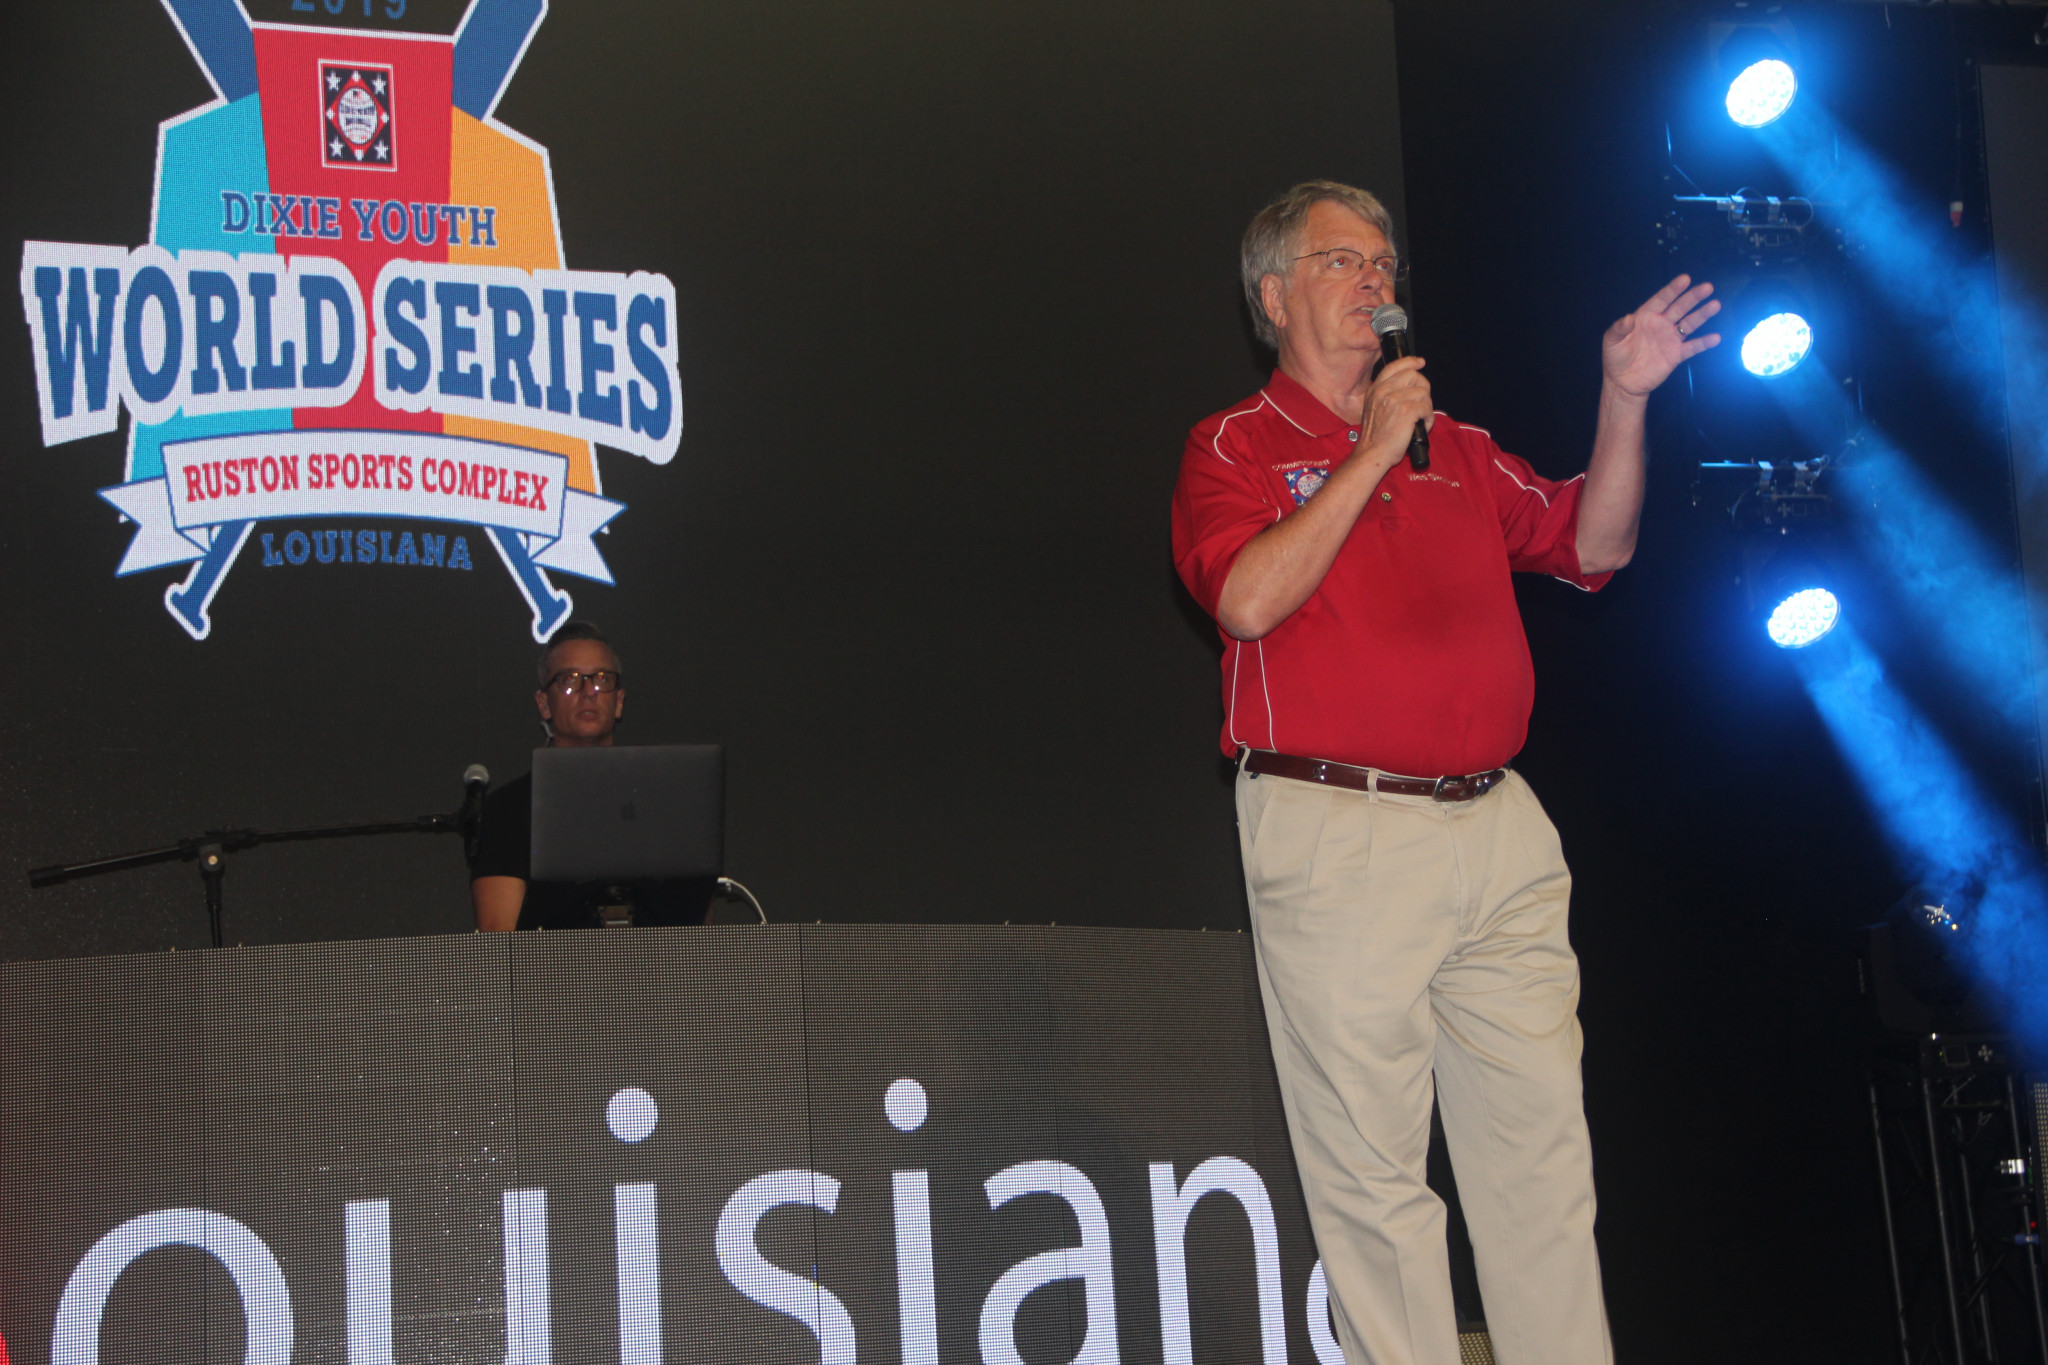 Dixie Youth Baseball Commissioner Wes Skelton addresses the crowd.